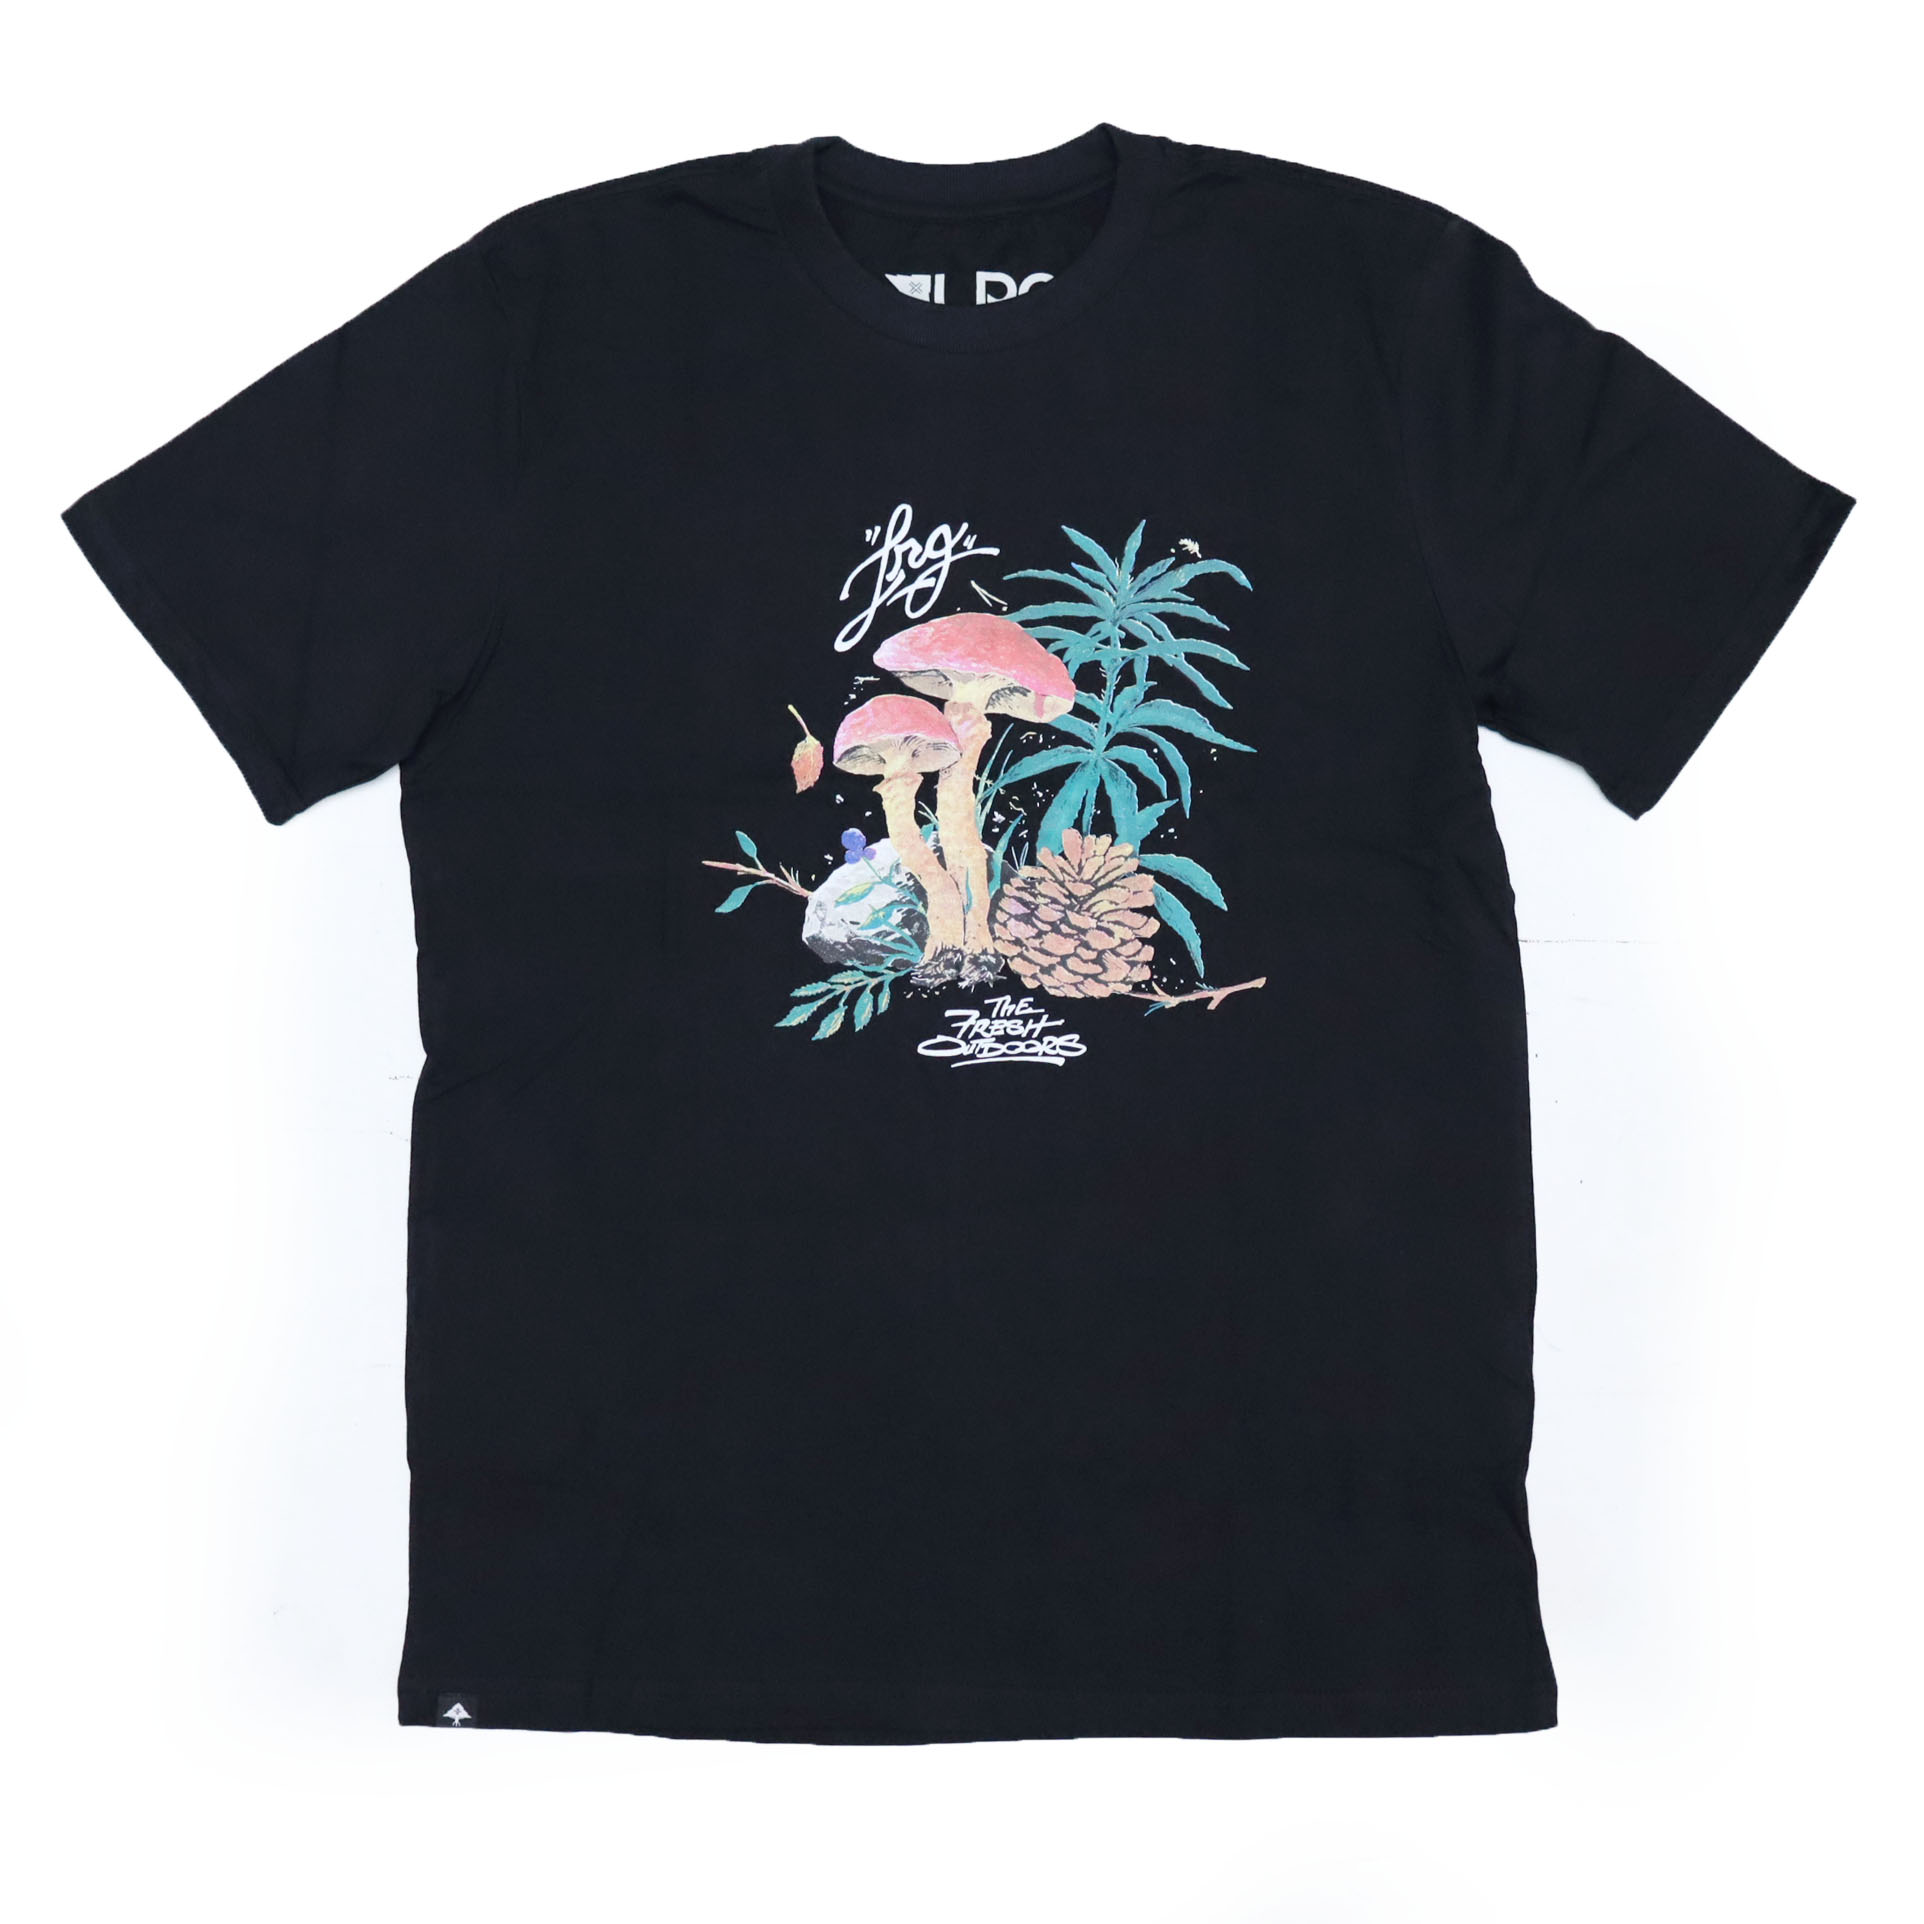 Camiseta LRG High On Pine - Preto